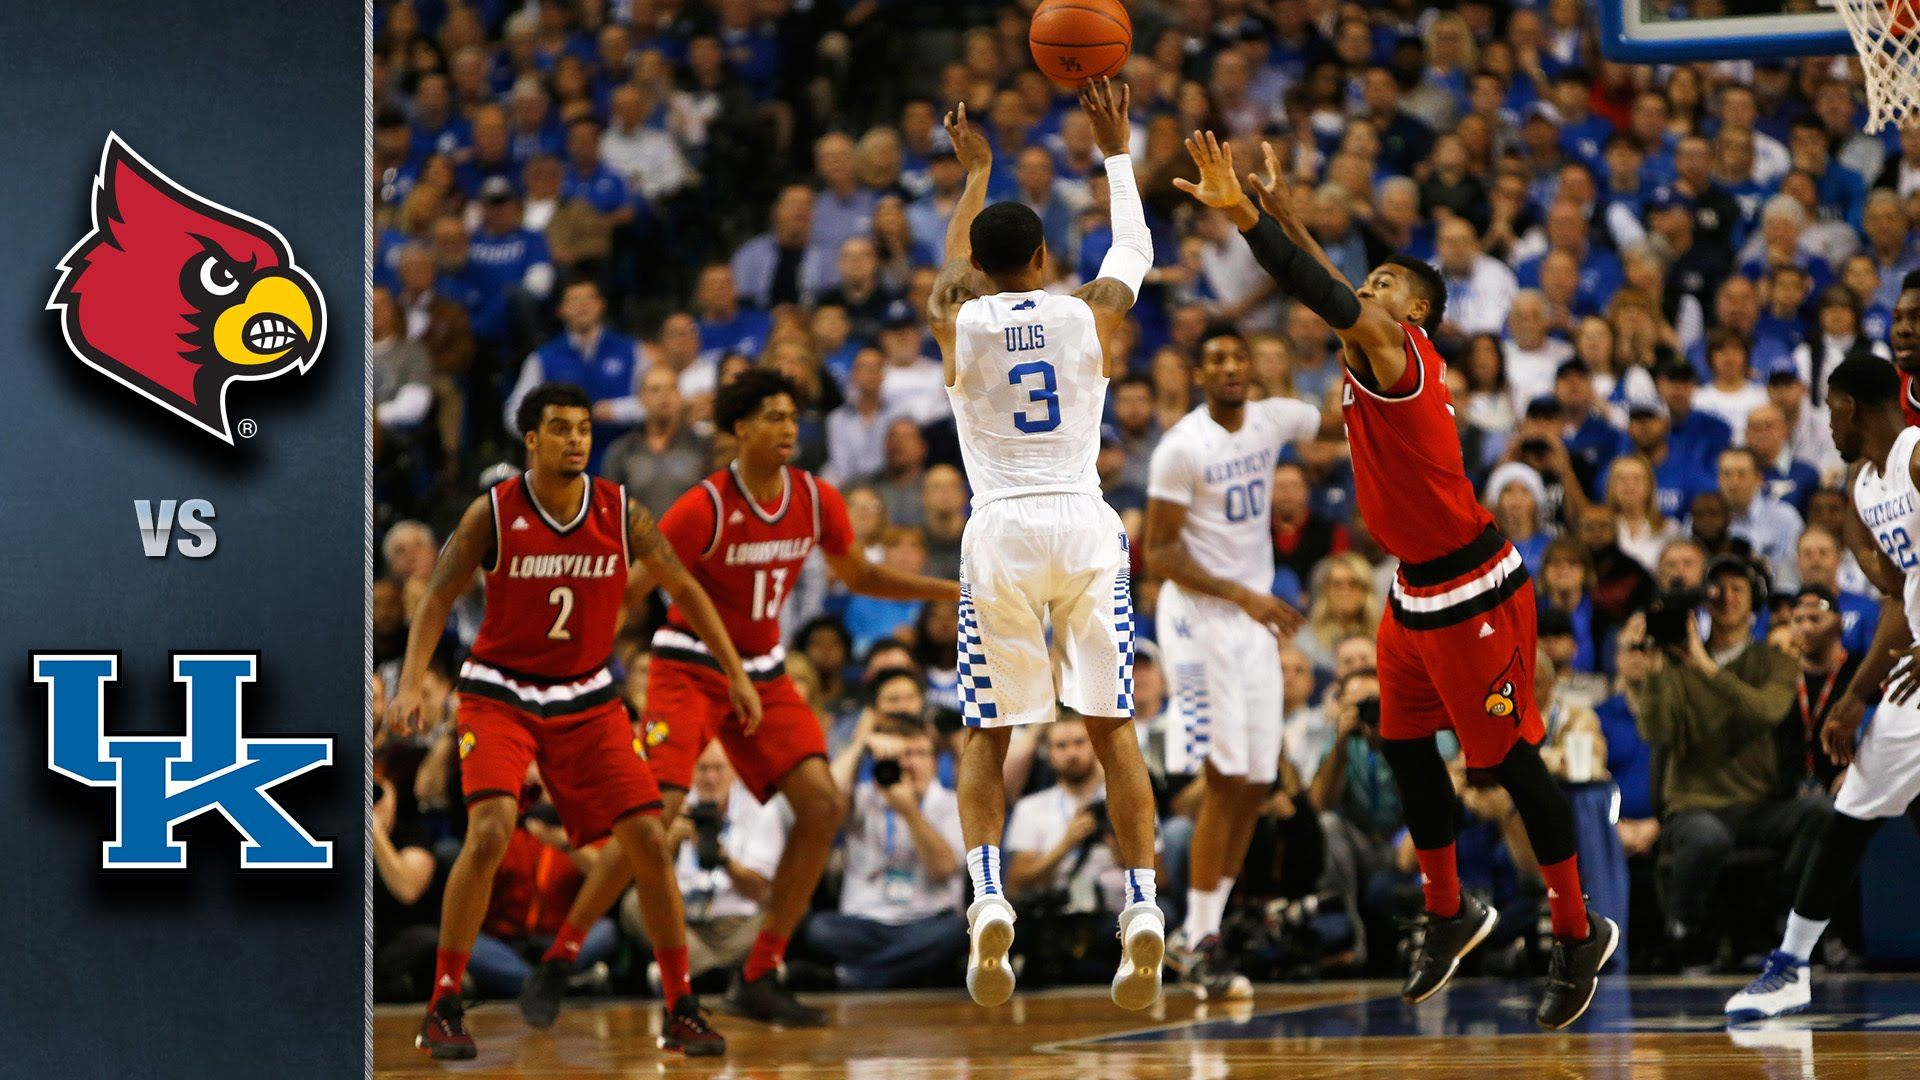 NCAA Thanksgiving Basketball Schedule We have the Hopper